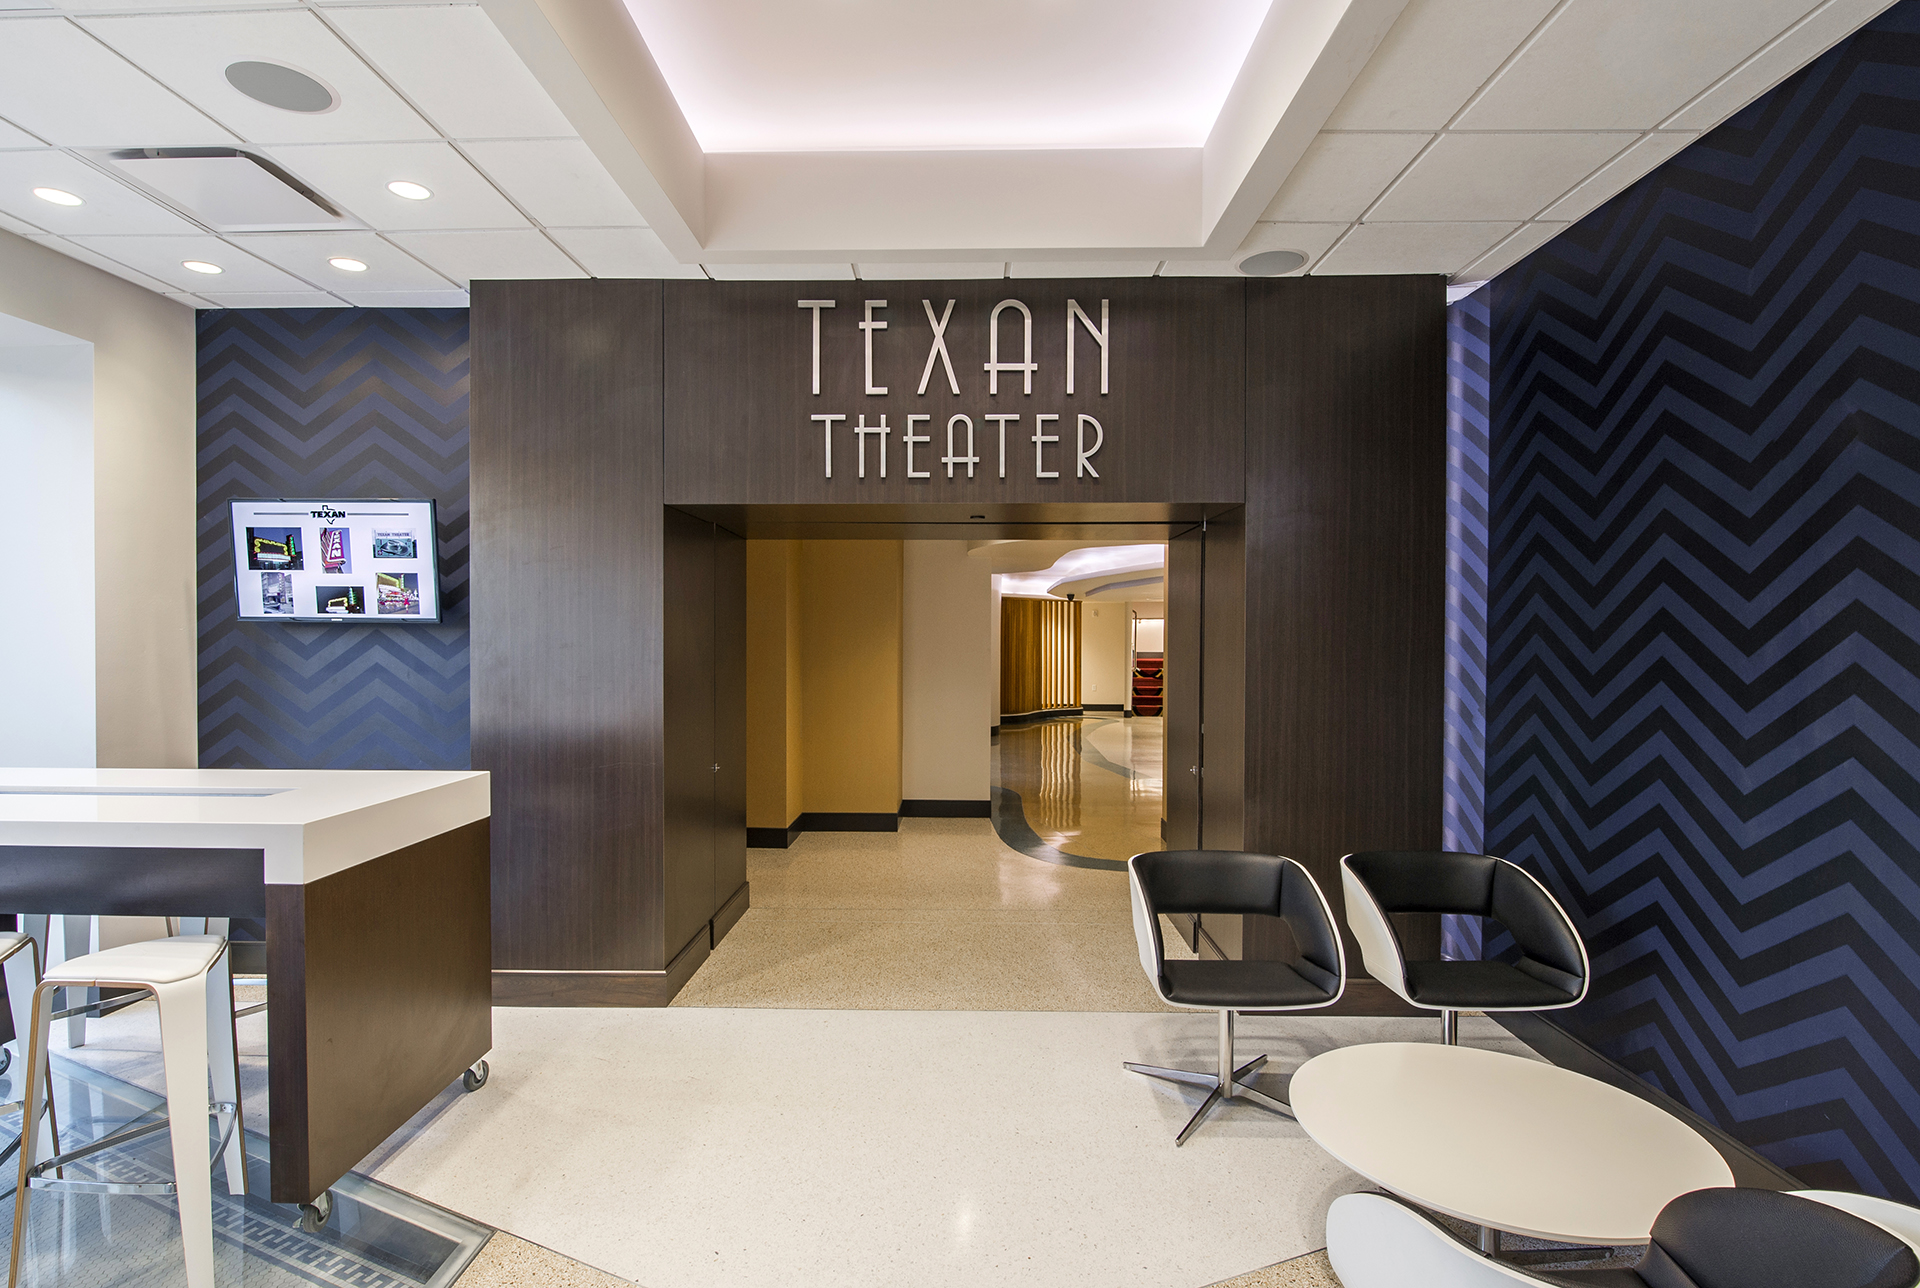 Texan Theater_HR-1784_2